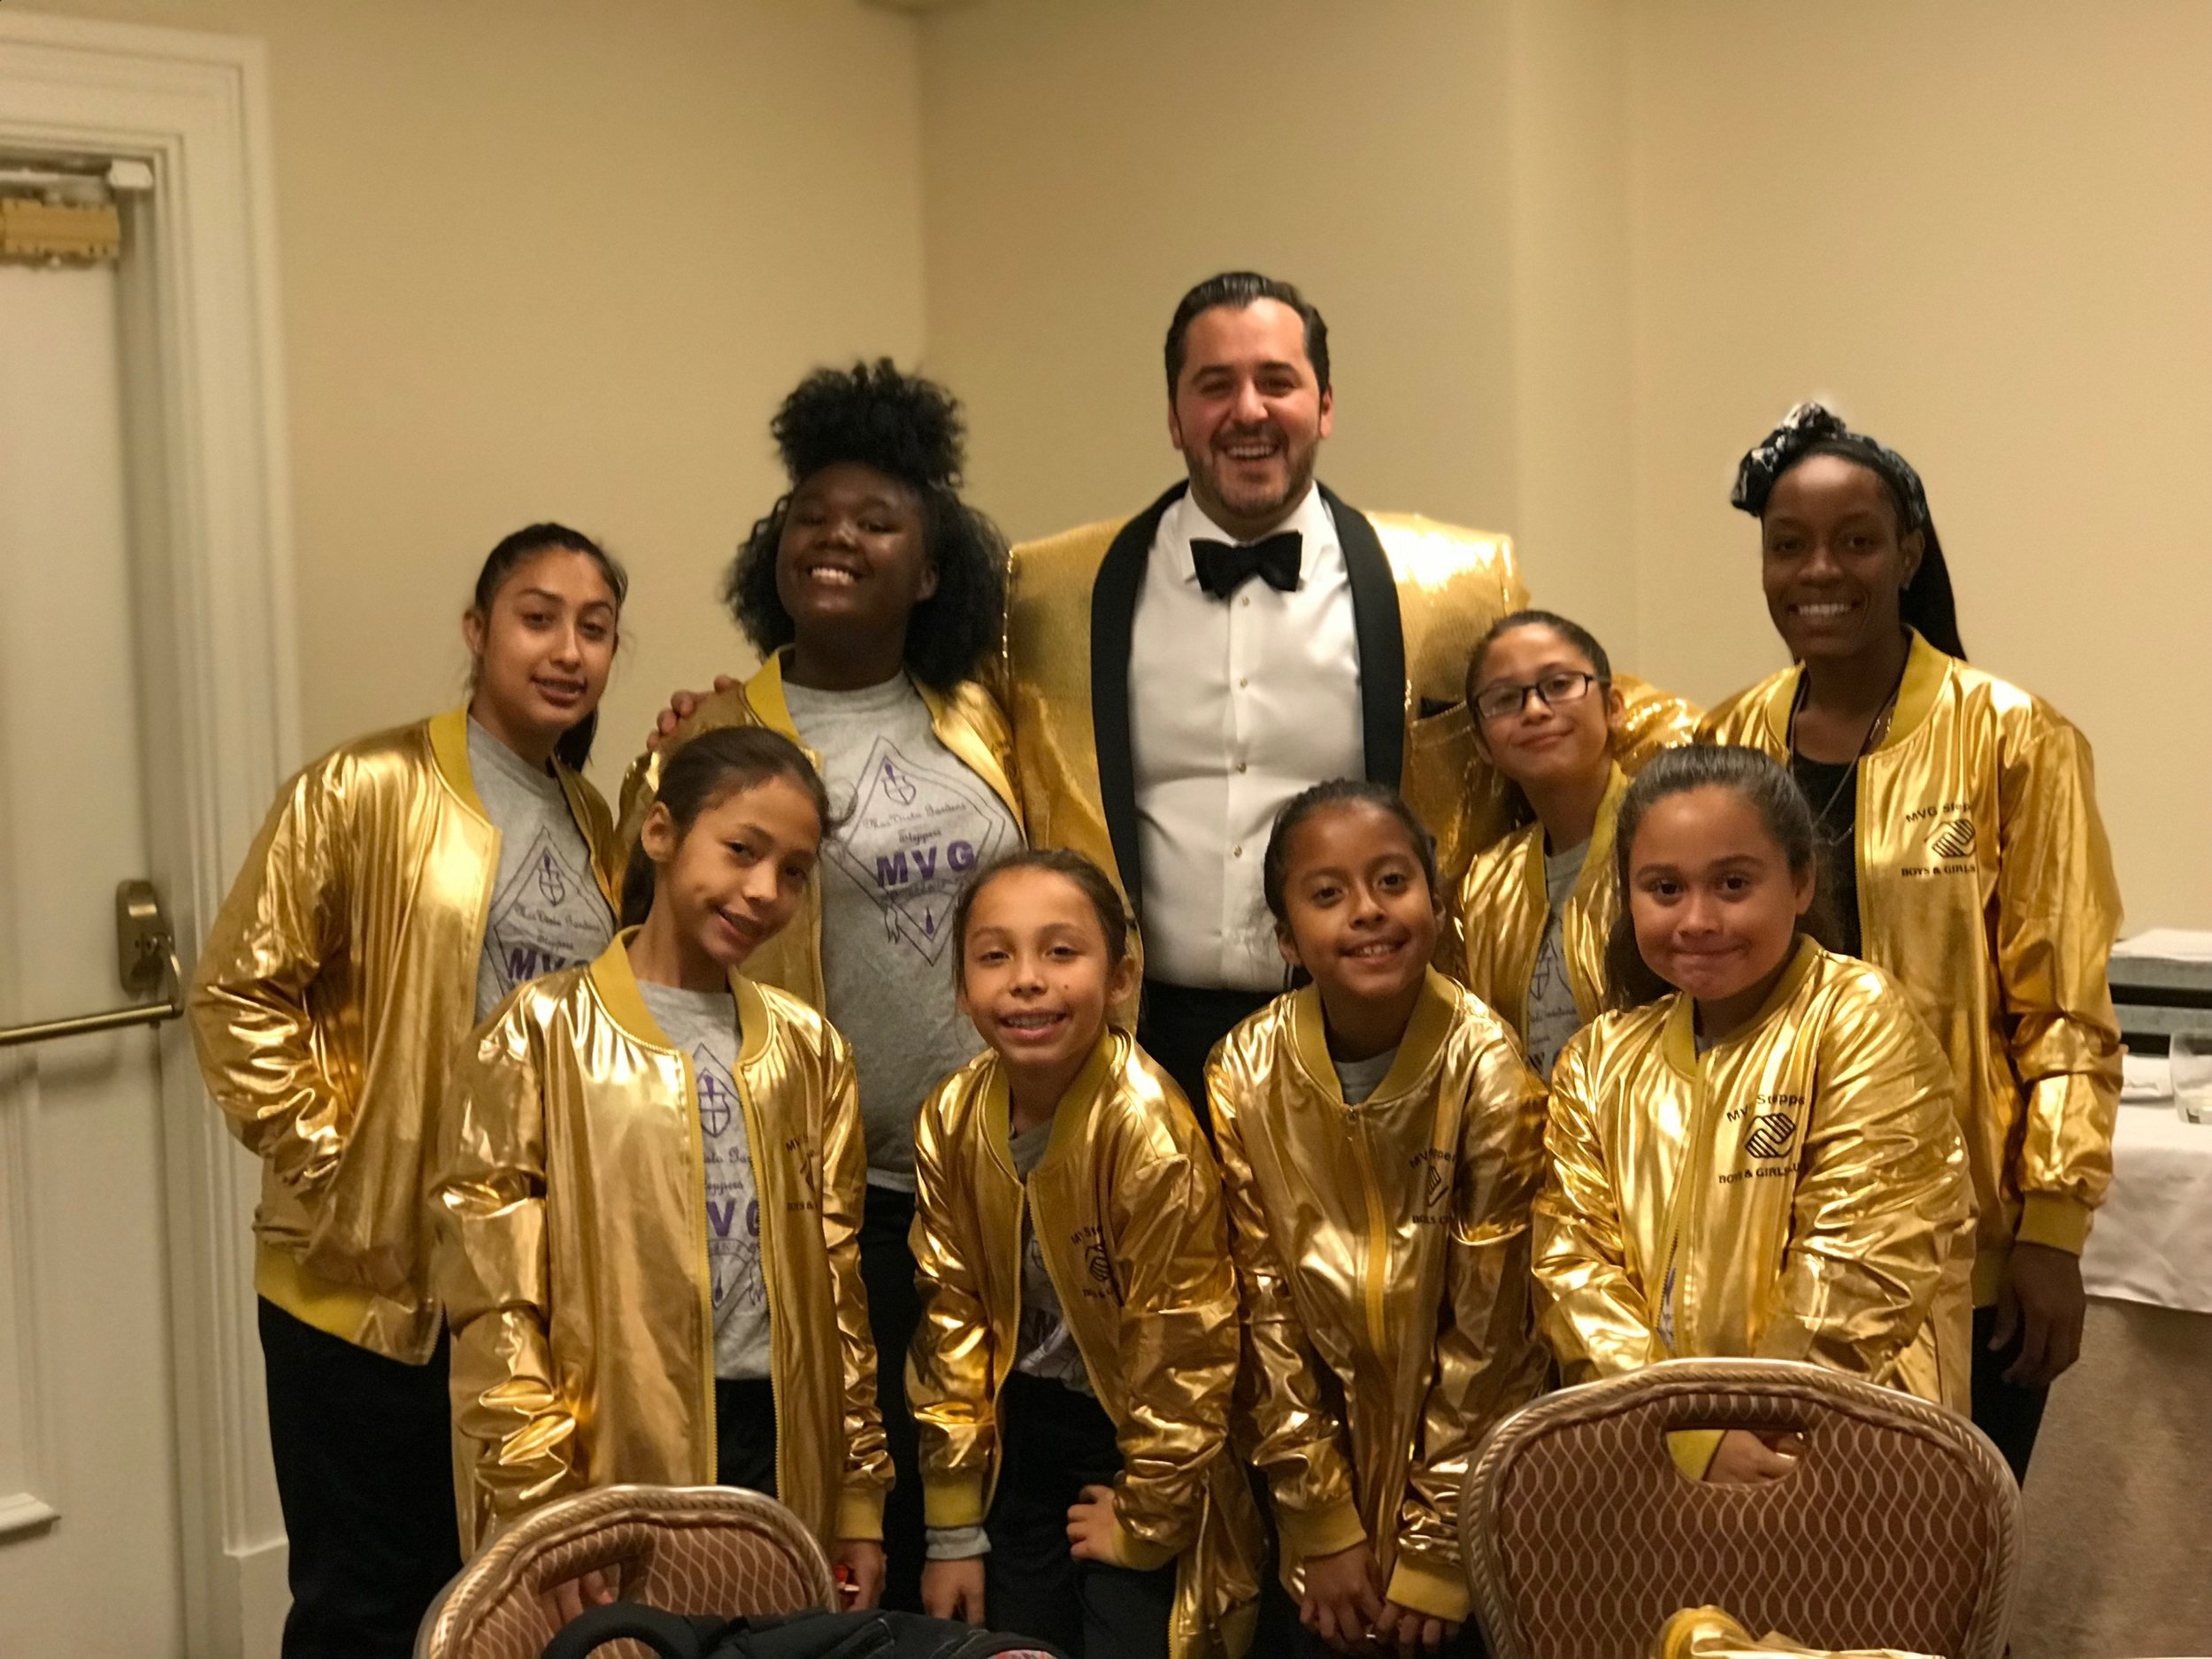 I surprised the MVG Steppers with matchinig gold jackets just before their performance. They loved it !!